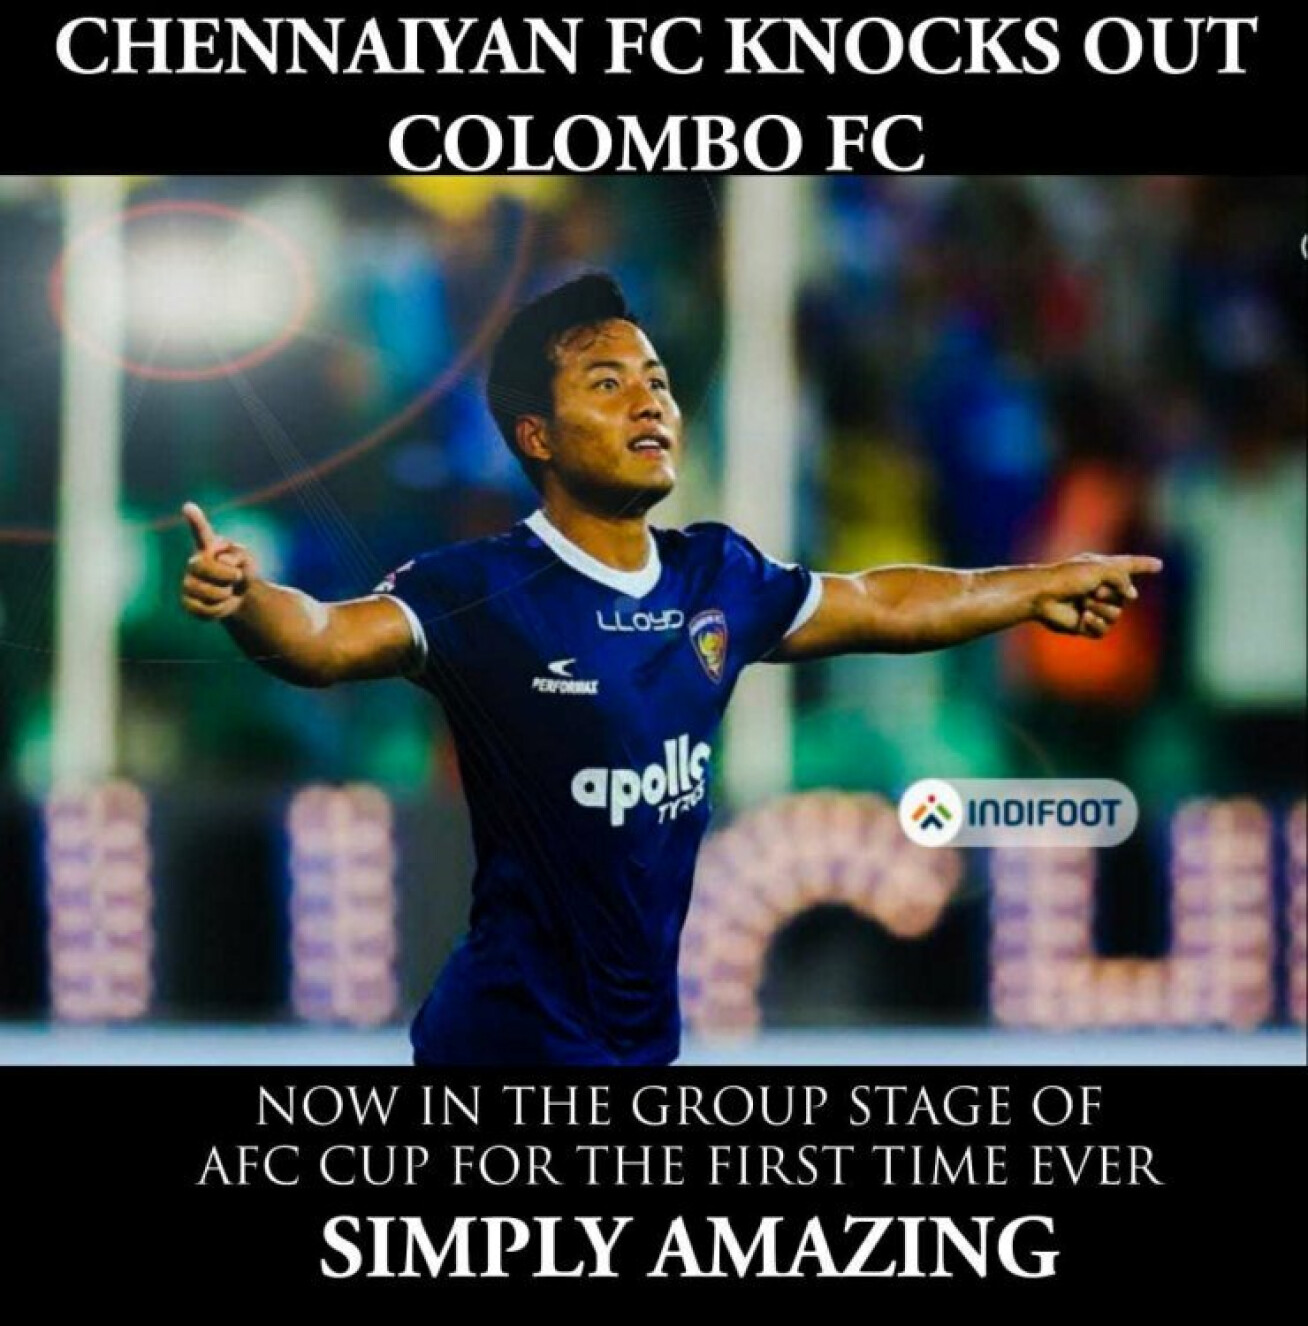 AFC Cup: Jeje inspired-Chennaiyin defeat Colombo to march into the group stage.